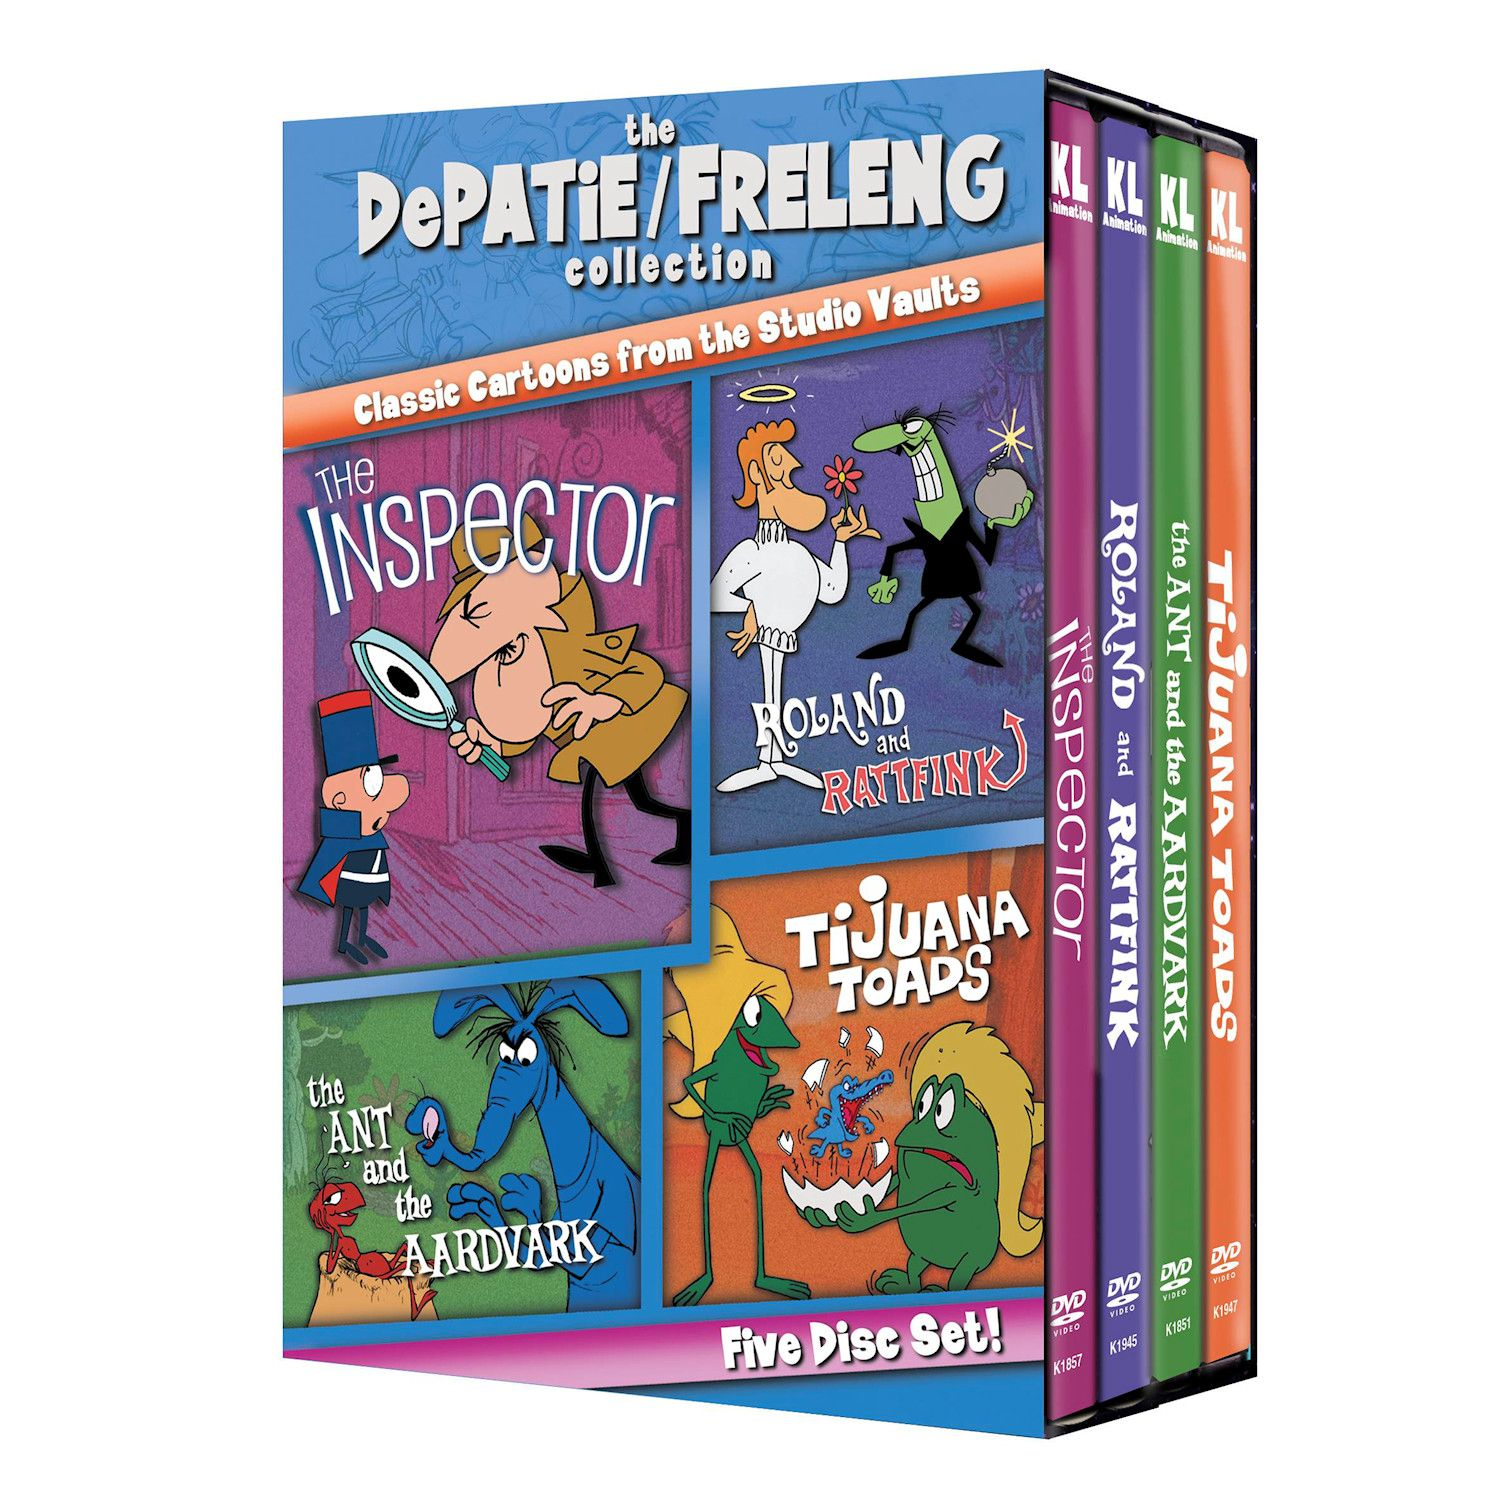 Depatie/freleng Classic Cartoons Collections - Set 1 Dvd & Blu-ray - DVD